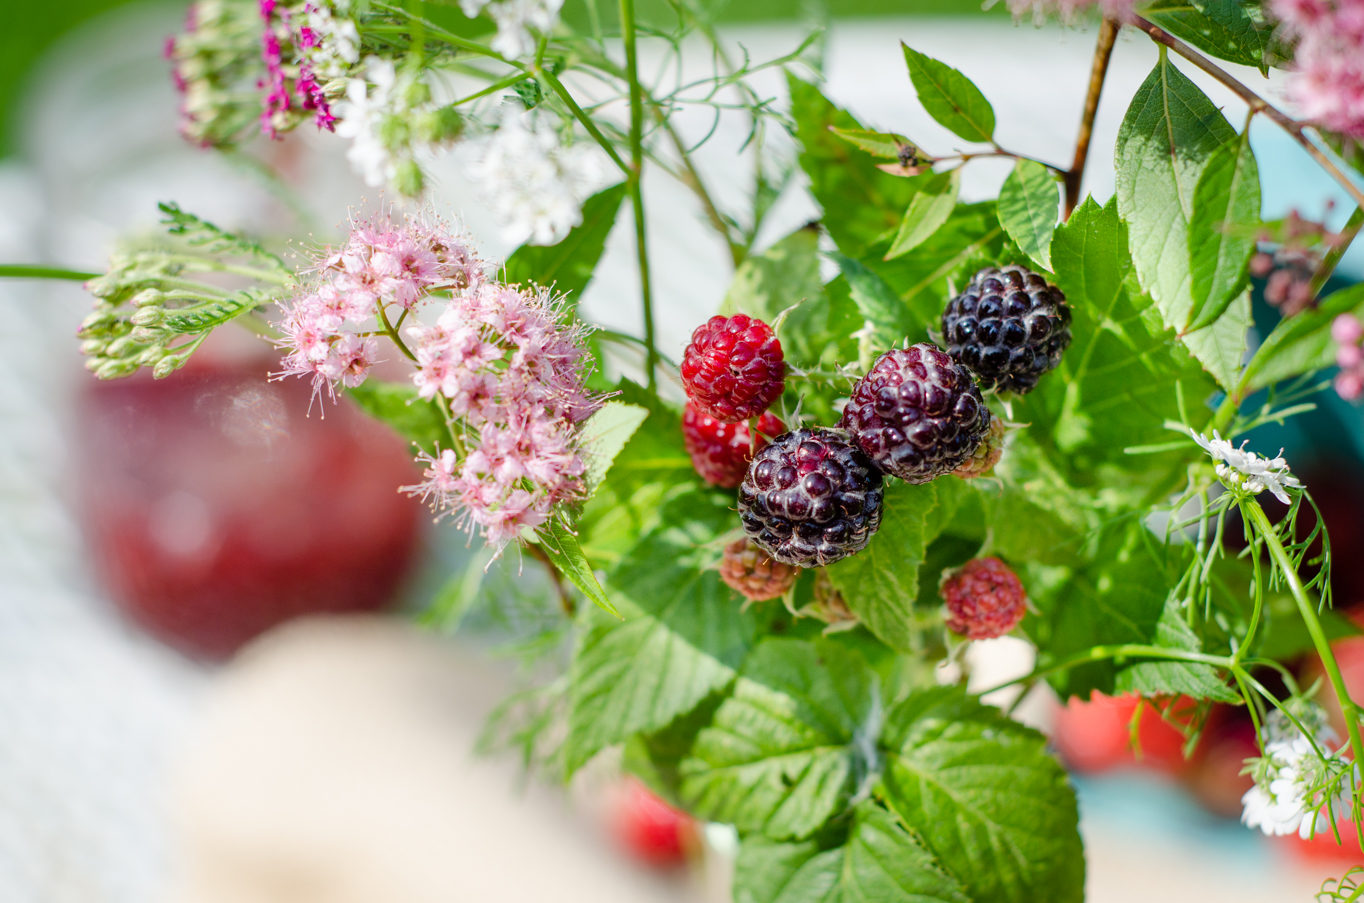 Blackberries & Flowers